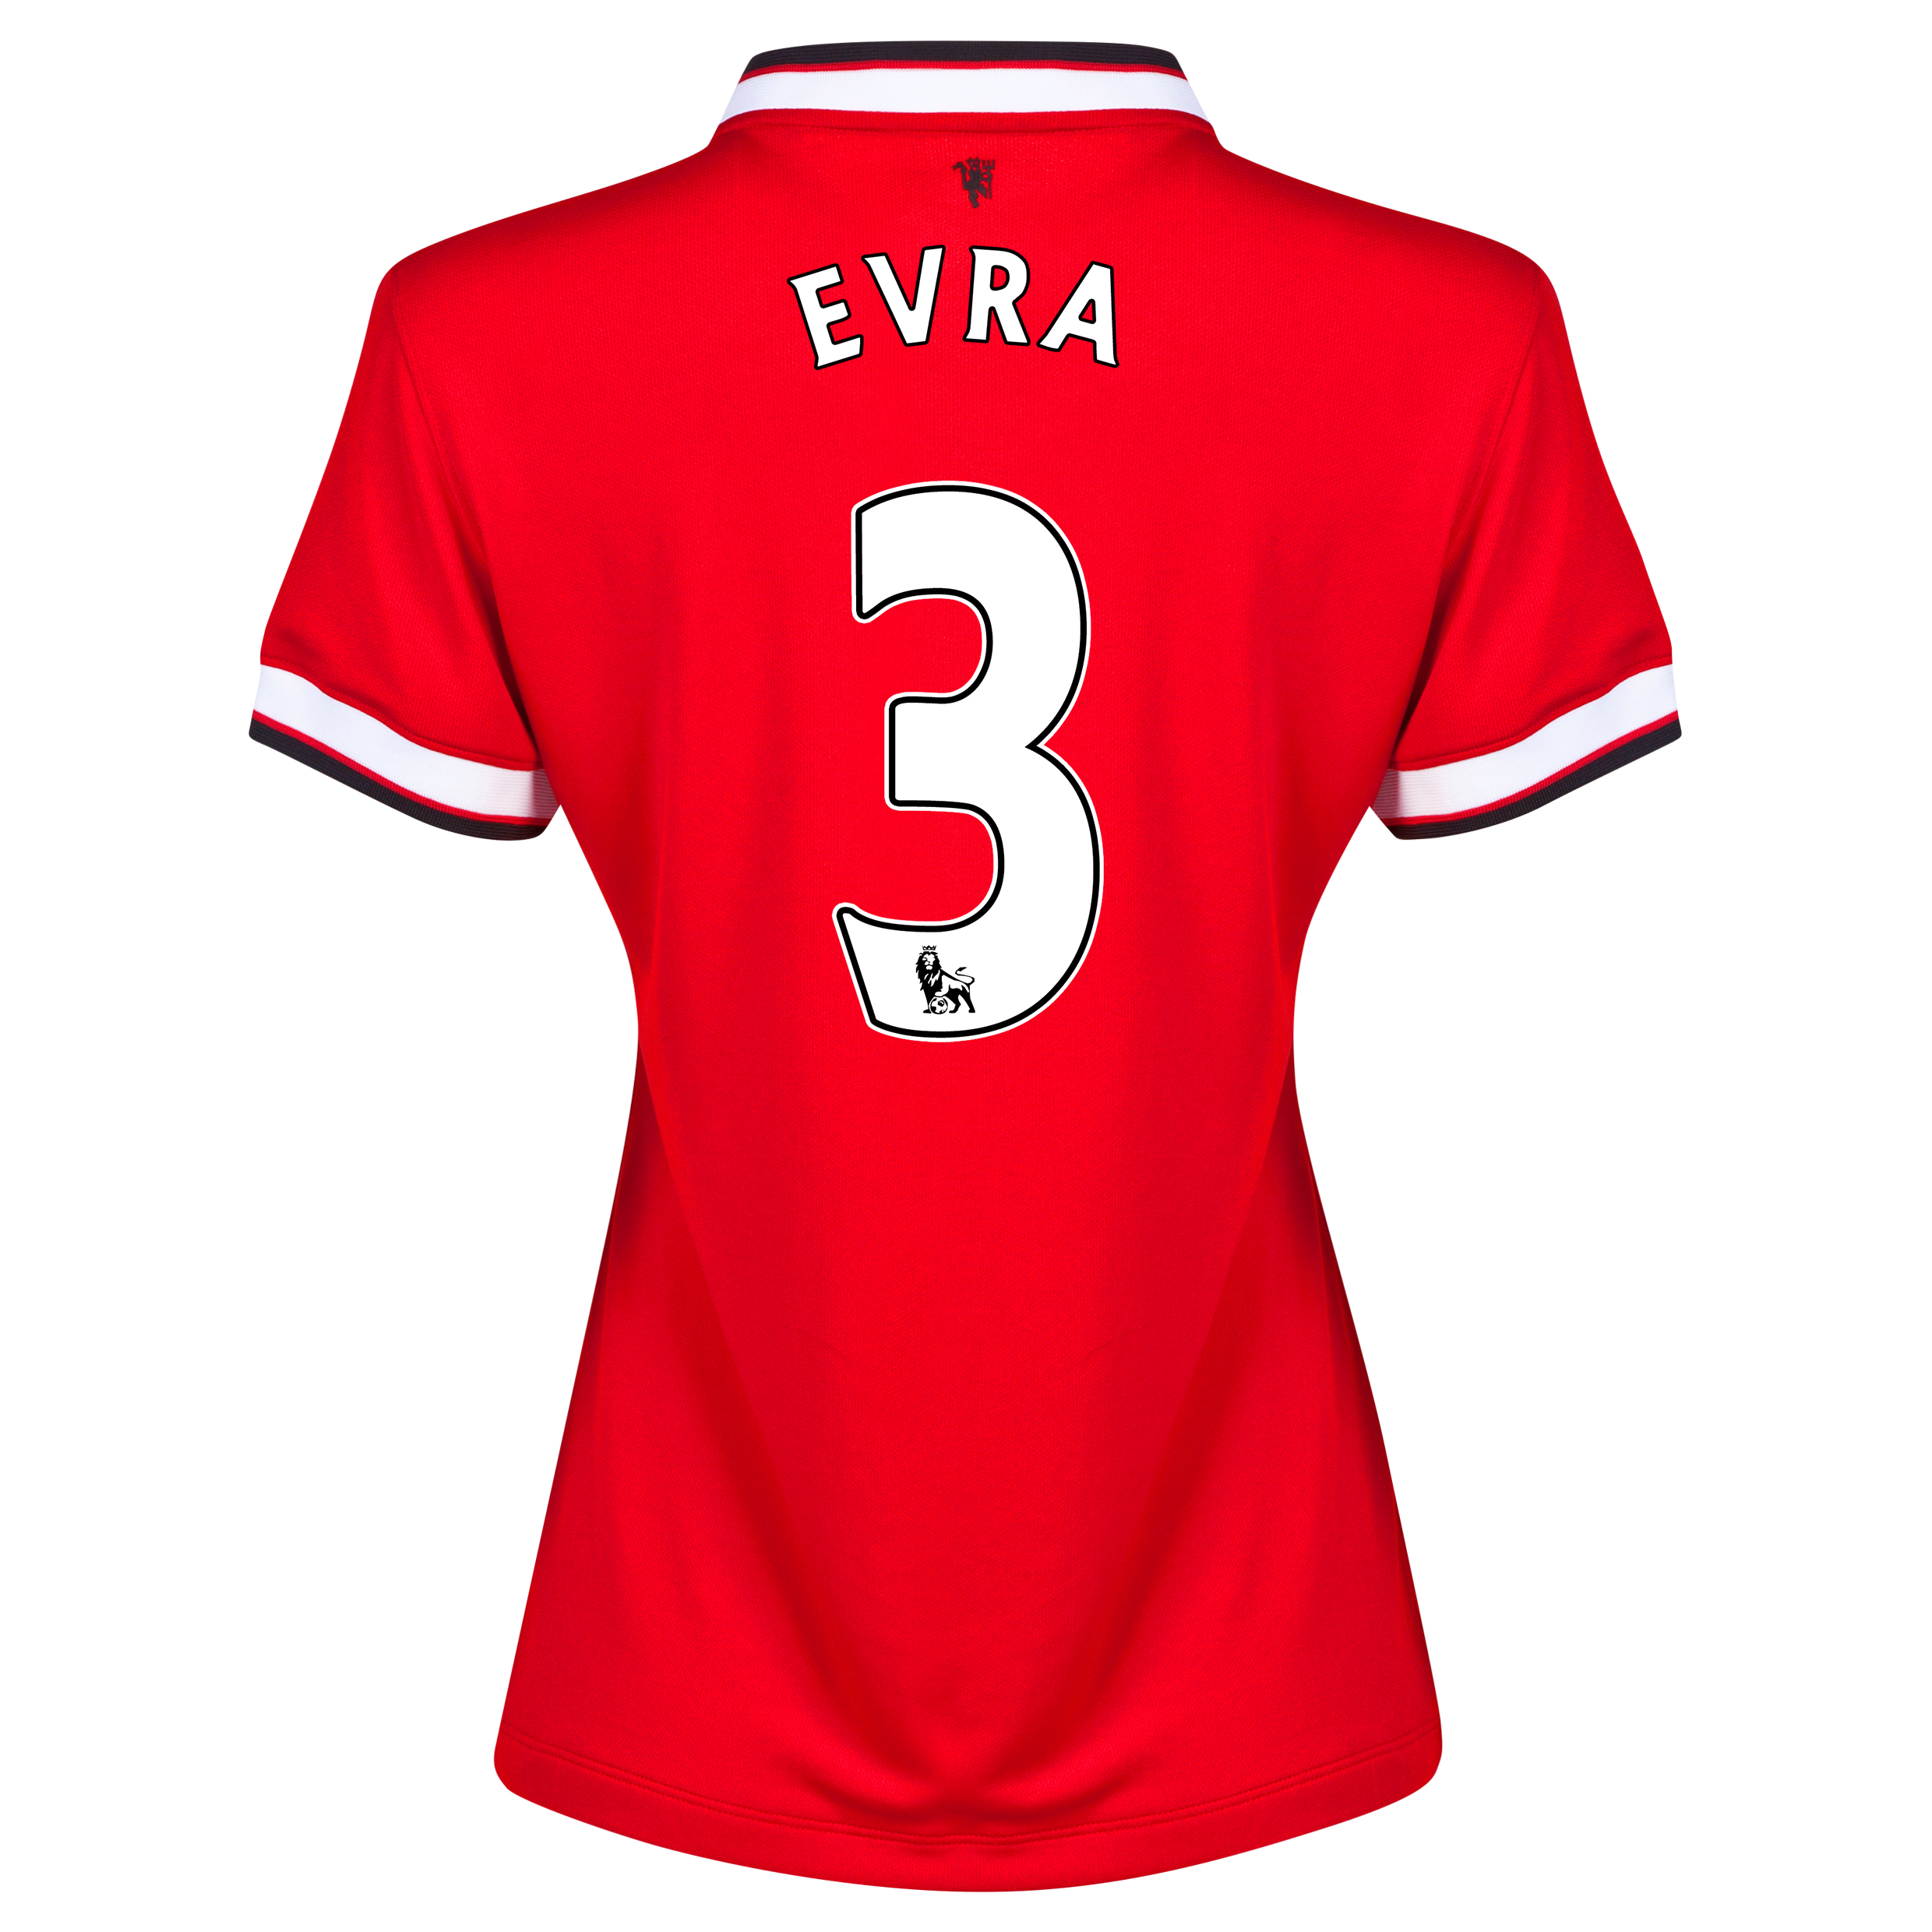 Manchester United Home Shirt 2014/15 - Womens Red with Evra 3 printing